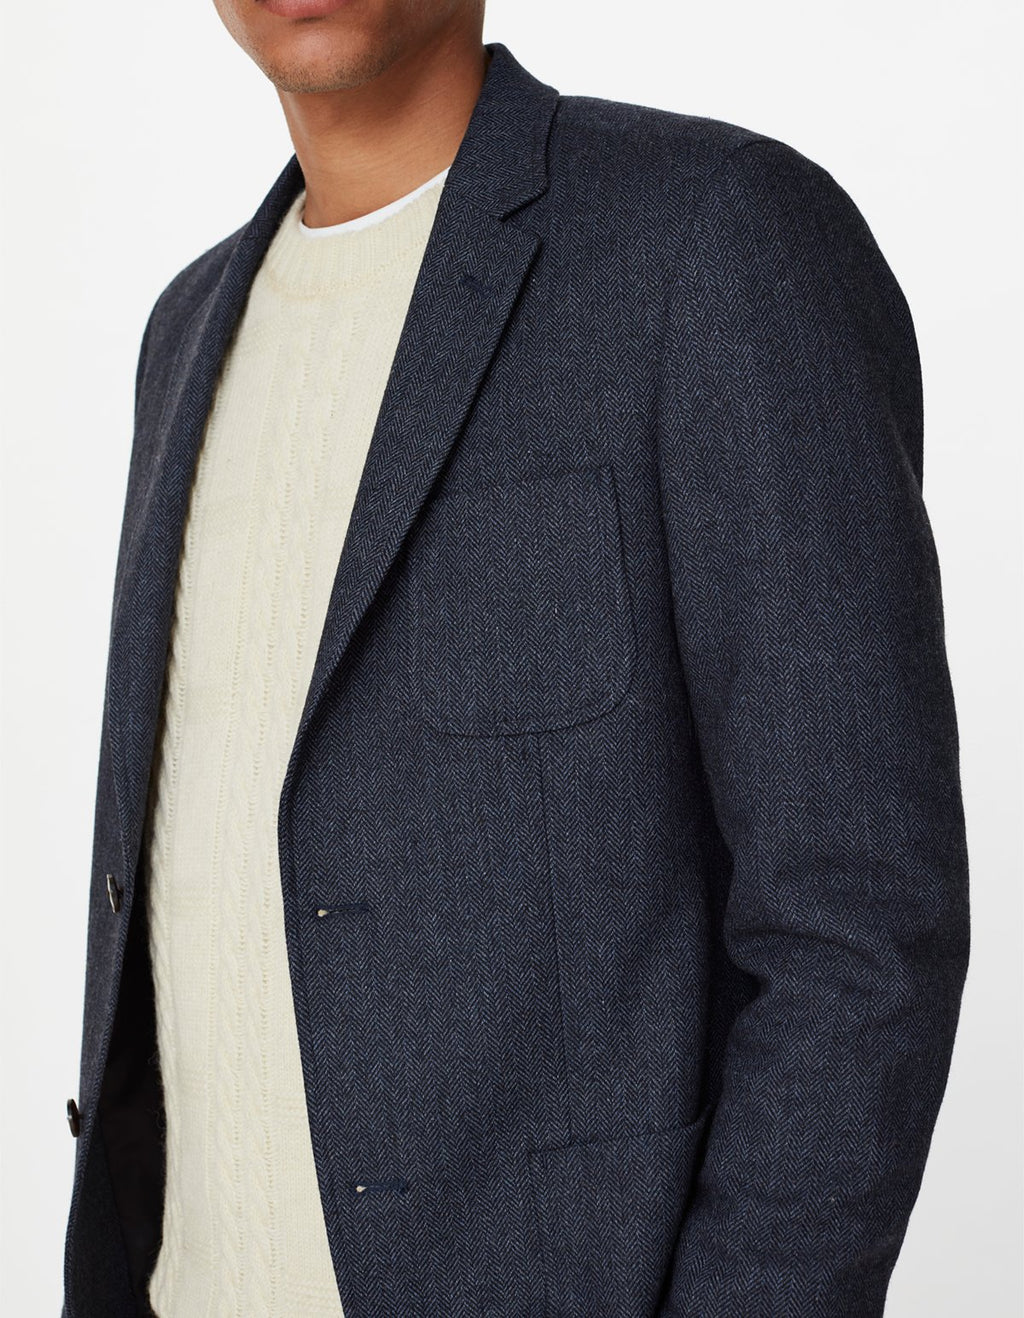 Les deux manhatten herringbone blazer dark navy black